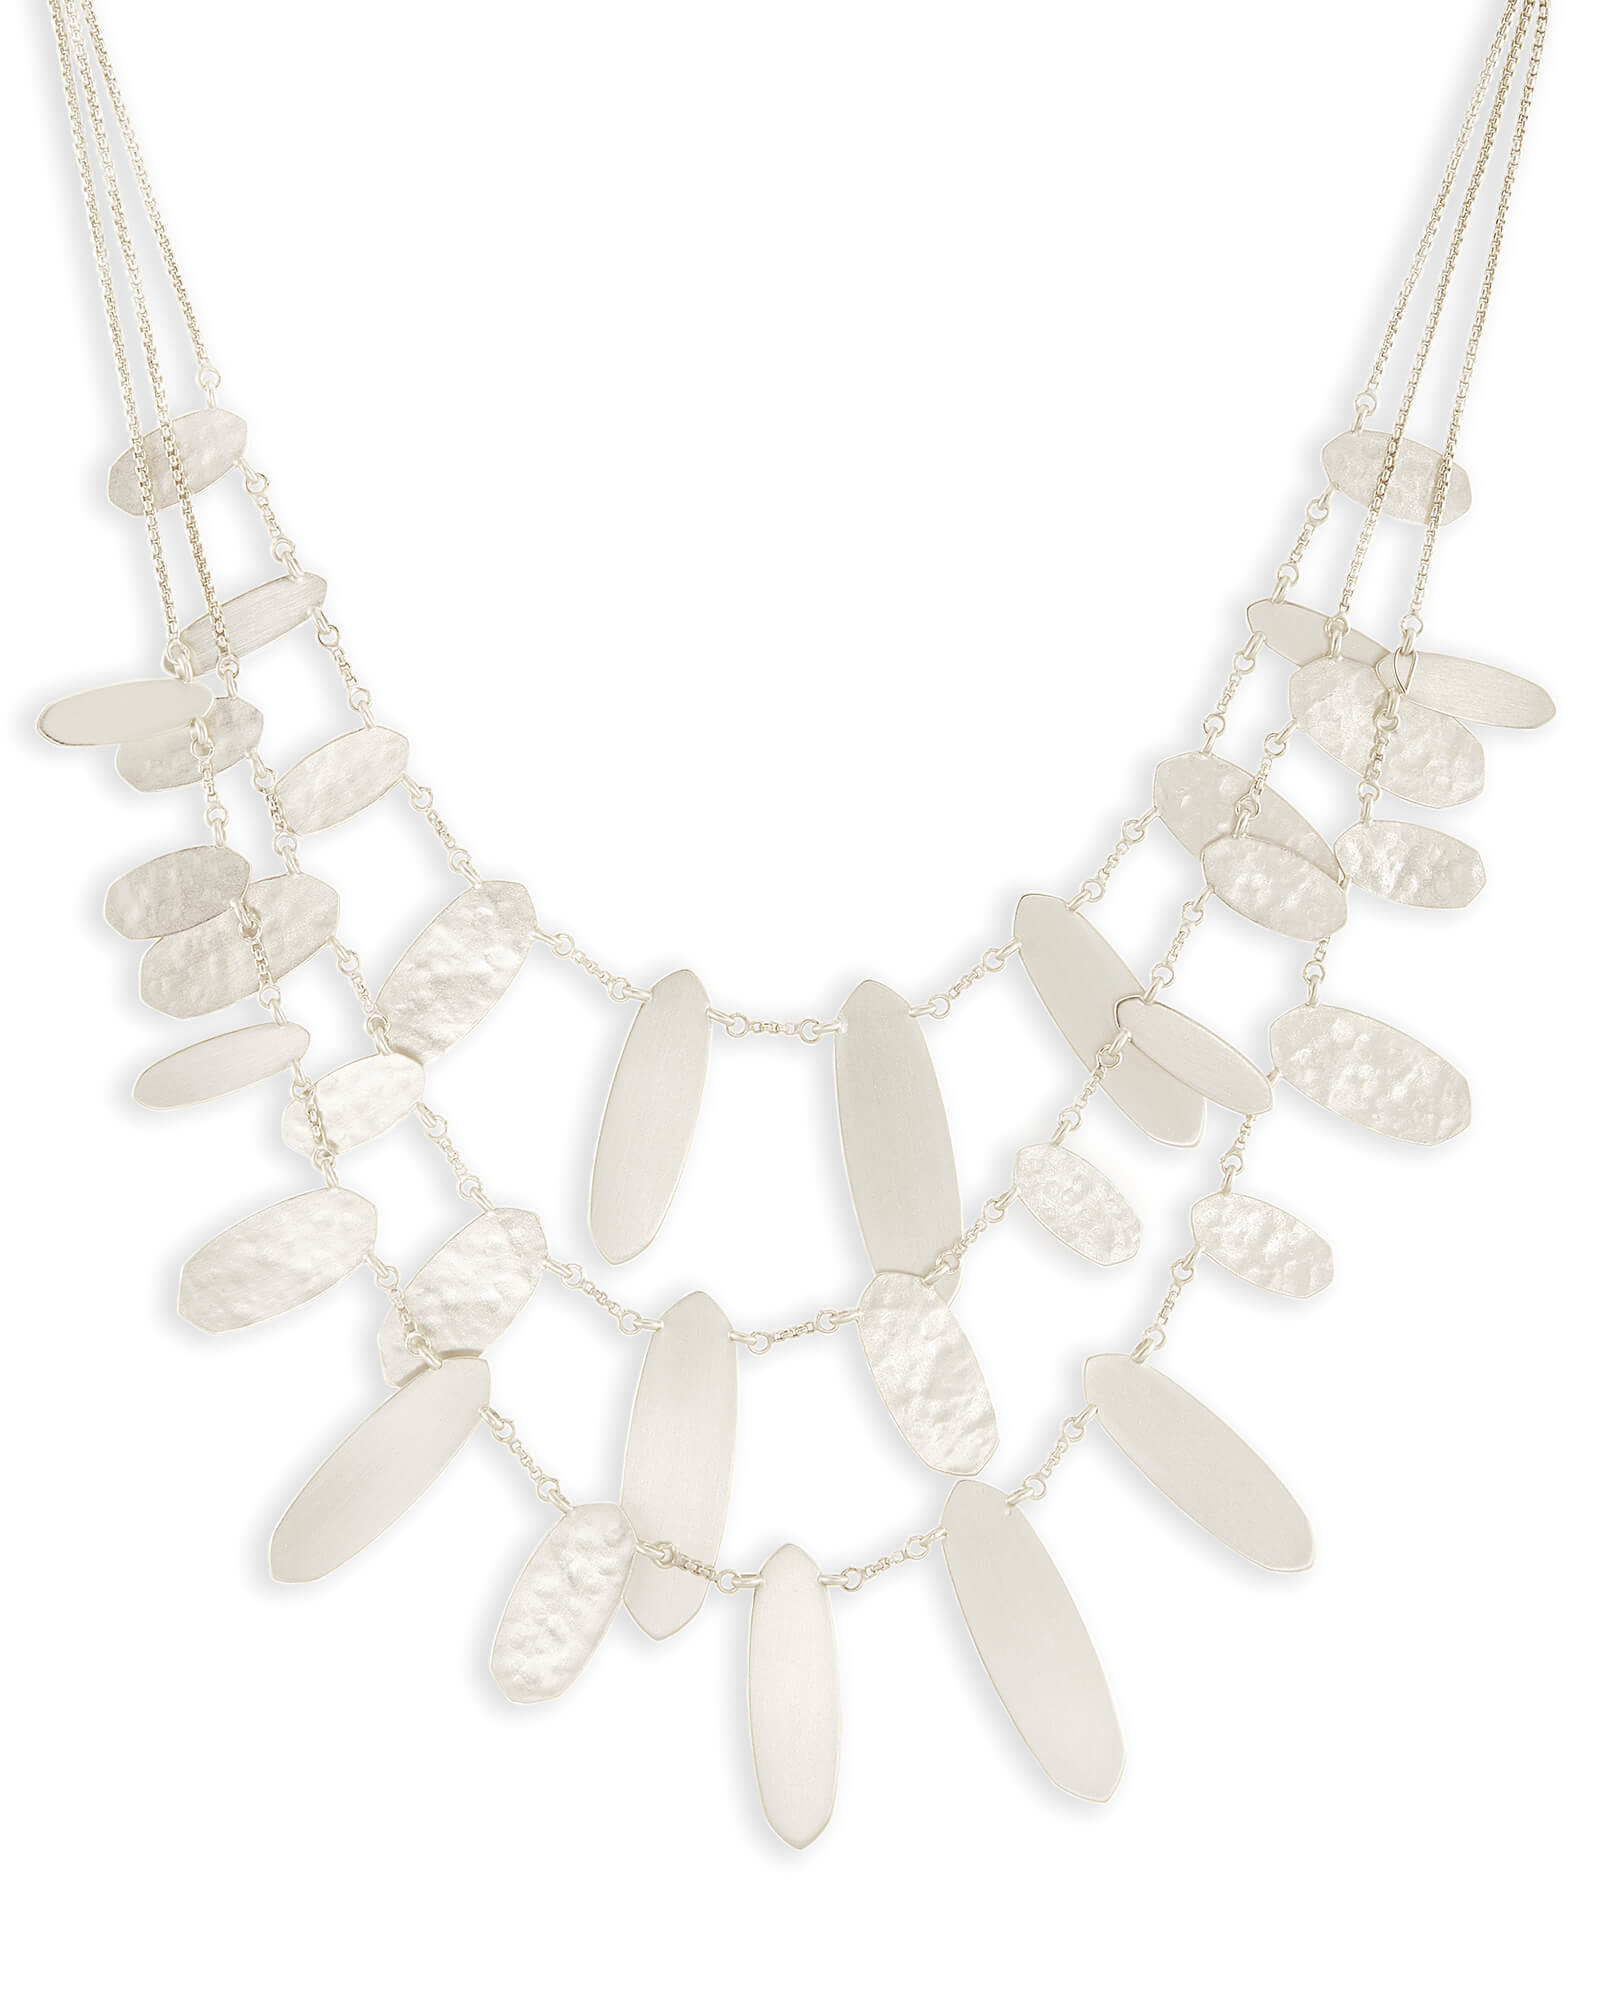 Nettie Statement Necklace